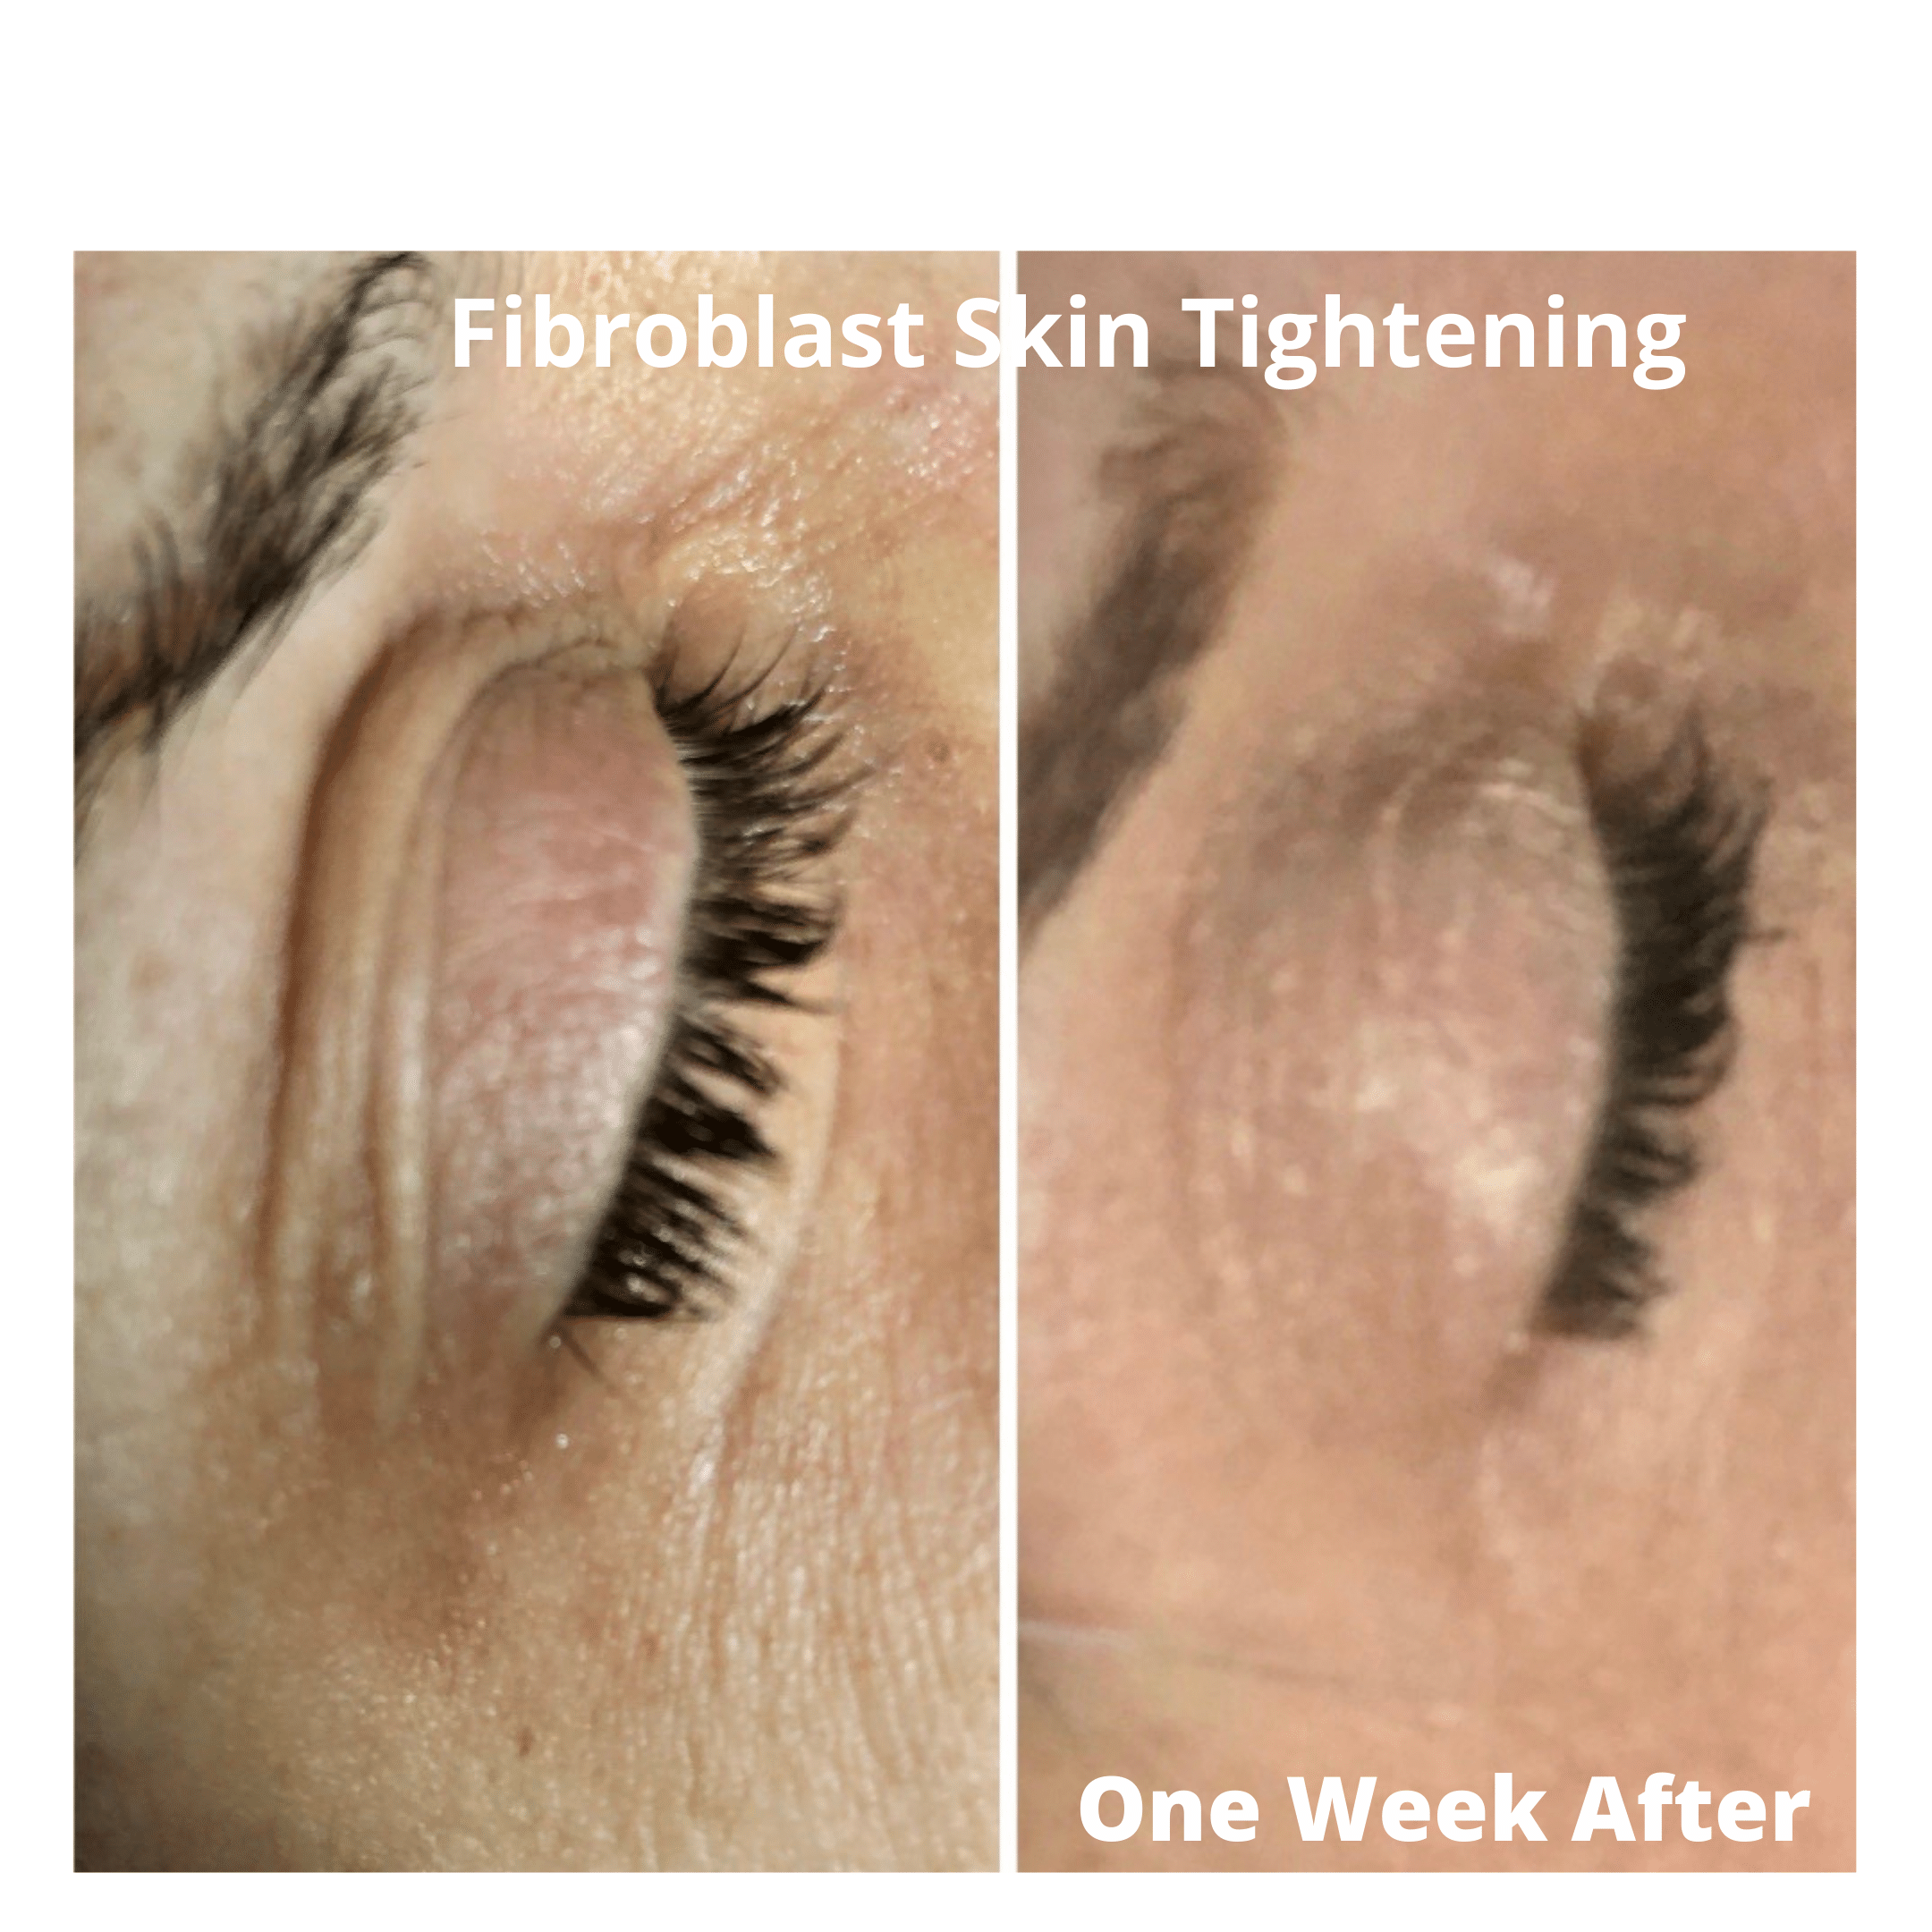 eye-lift-non-surgical-fibroblast-tightening-skin-apeel-boca-raton-prive-technique